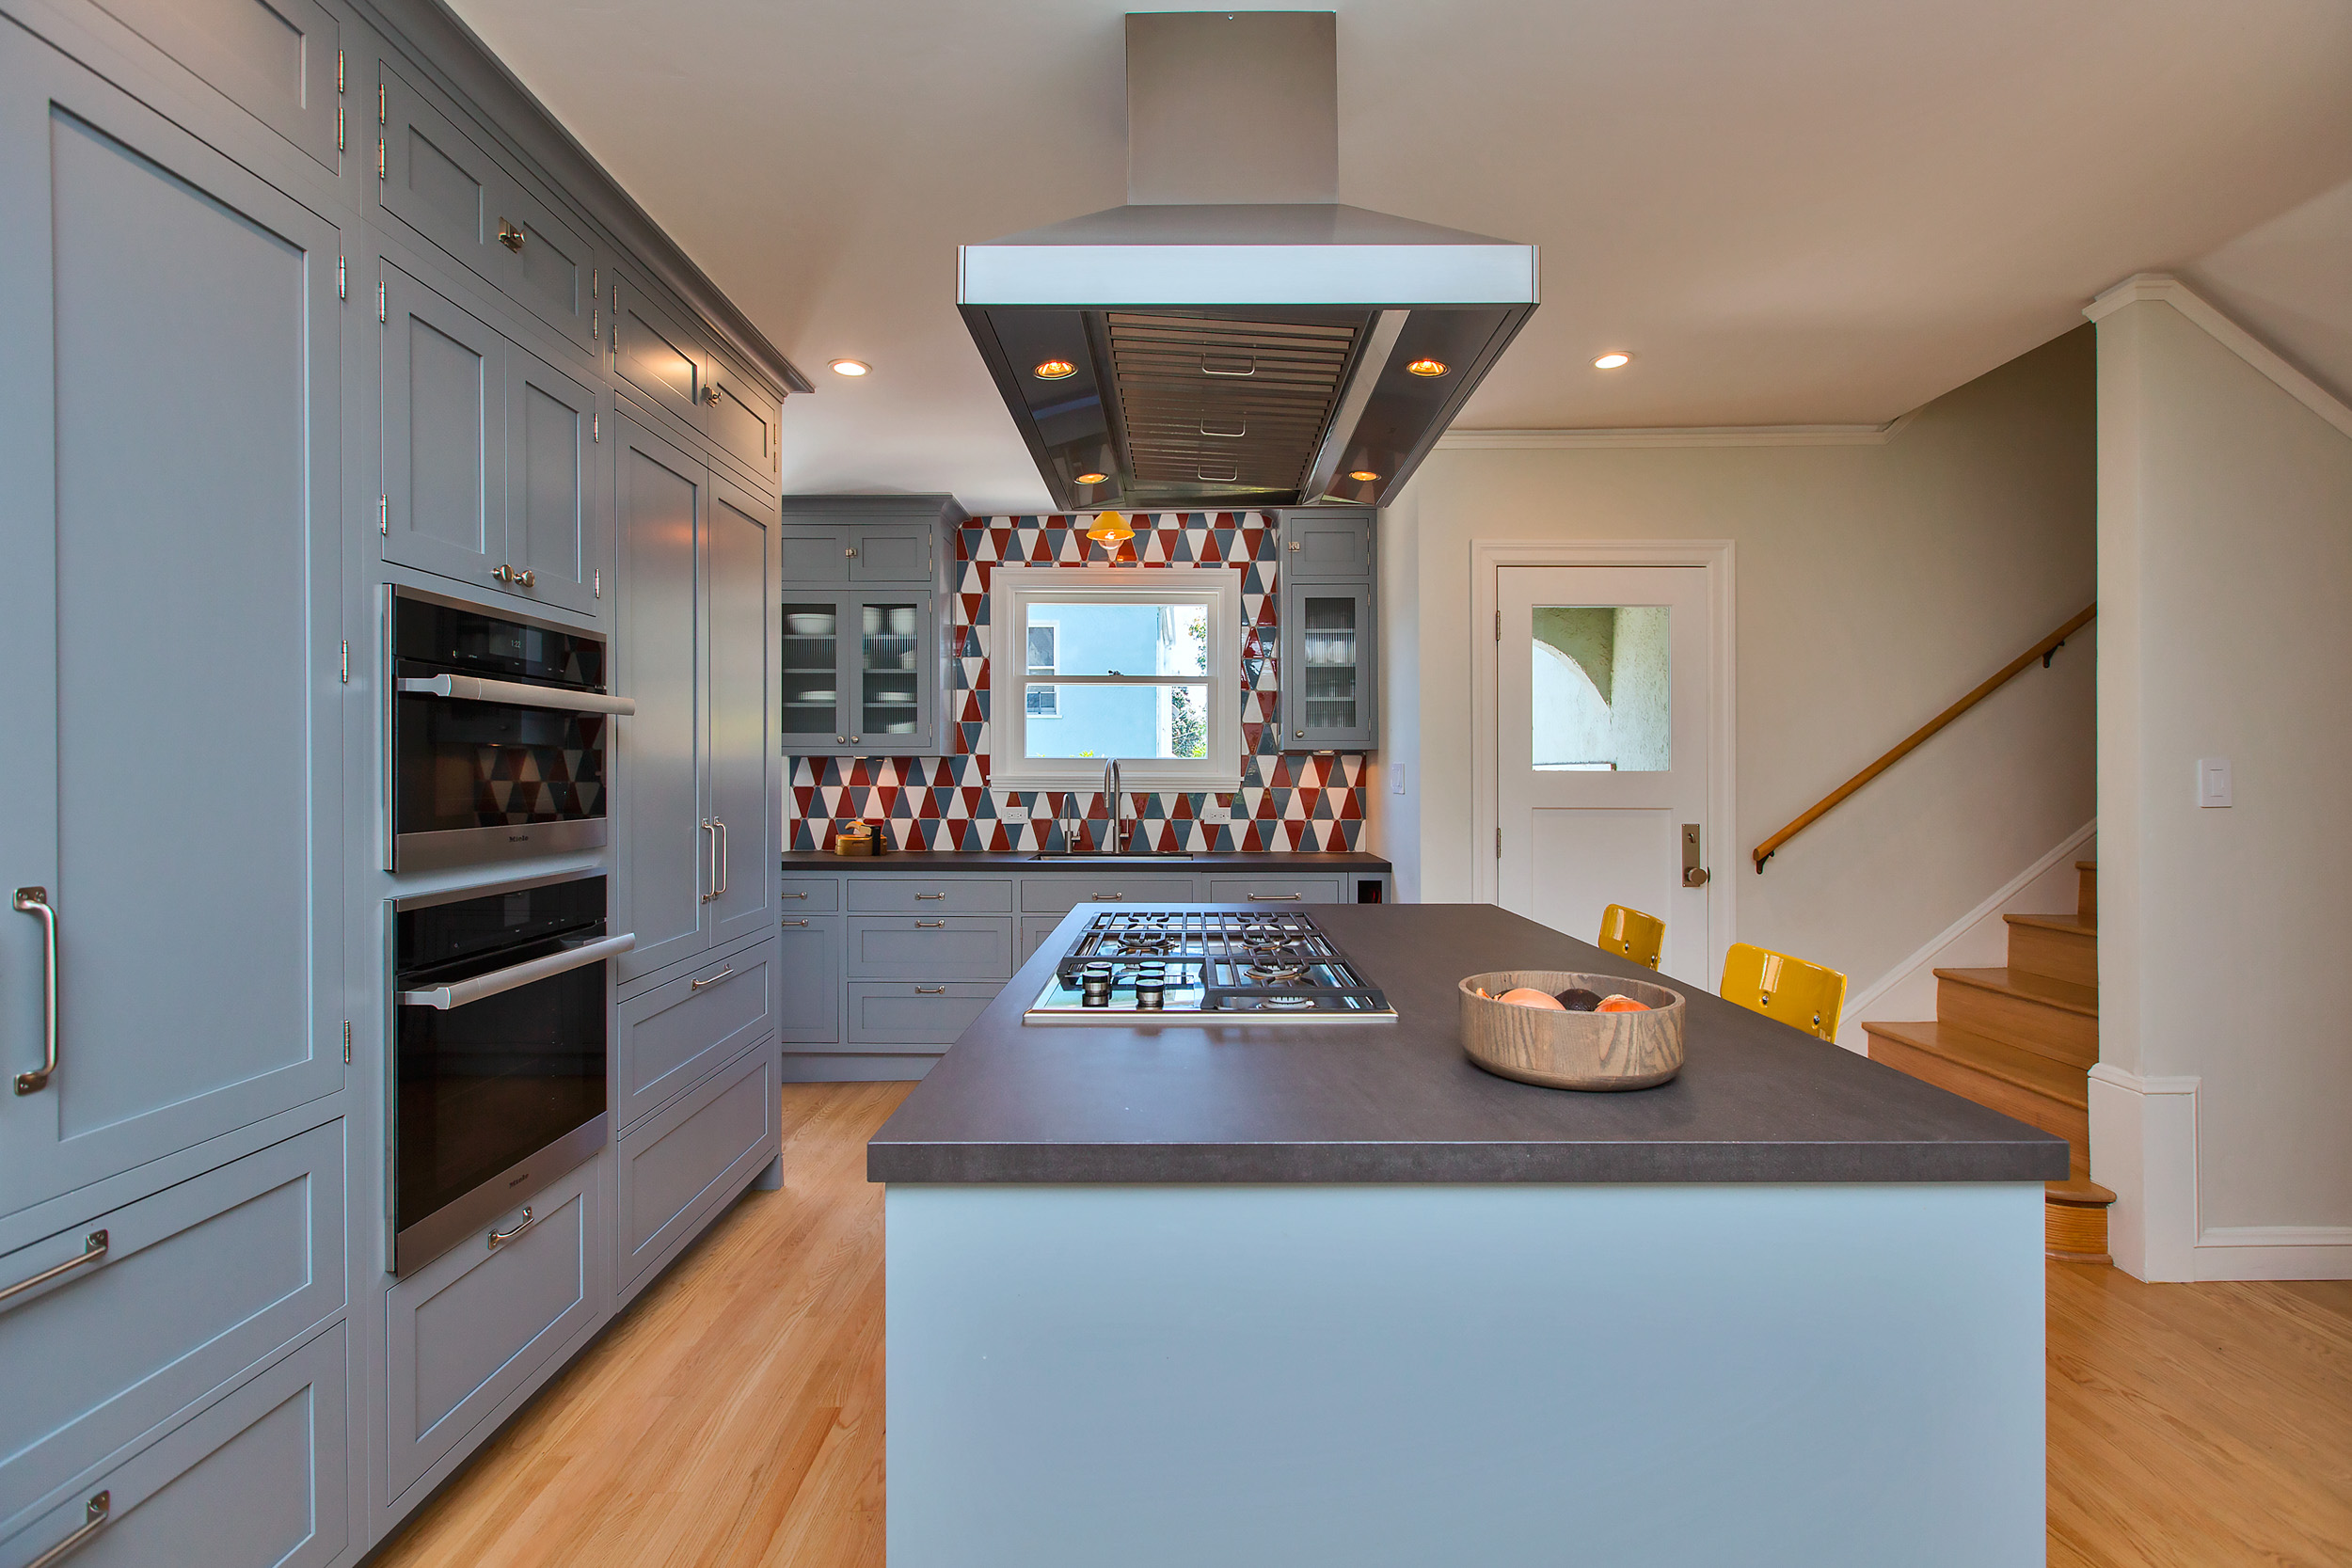 william-adams-design-colorful-tudor-kitchen-island-side-view.jpg